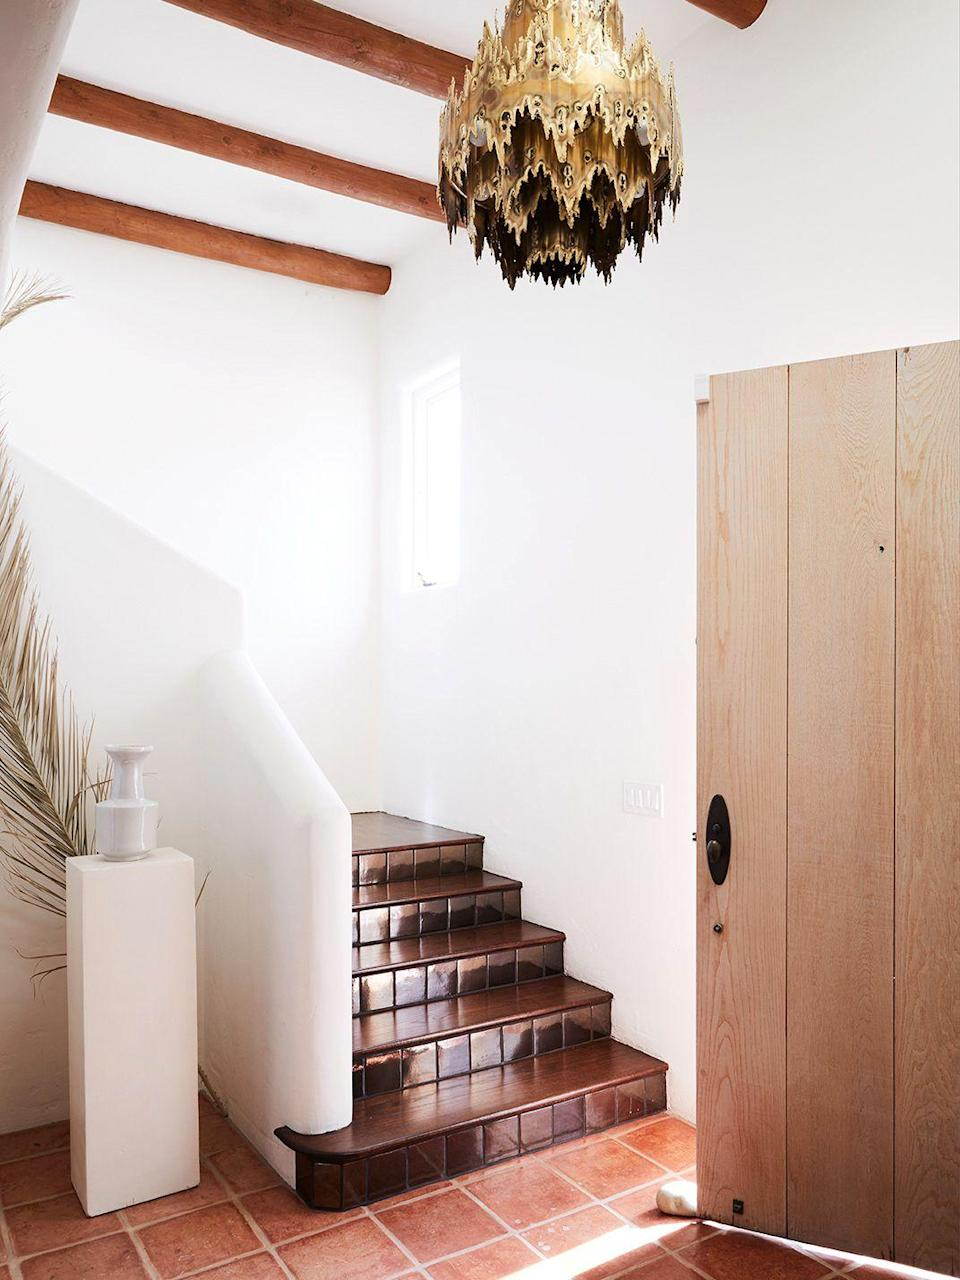 "<p>Simply no room for a console table? Try a pedestal instead. In this contemporary Santa Barbara adobe home designed by <a href=""https://www.corinnemathern.com/"" rel=""nofollow noopener"" target=""_blank"" data-ylk=""slk:Corrine Mathern Studio"" class=""link rapid-noclick-resp"">Corrine Mathern Studio</a>, it fits perfectly behind the stairs and adds that extra oomph without looking out of scale. It's the perfect ""entryway"" apartment solution when your front door opens up to your living room, kitchen, or even your bedroom. </p>"